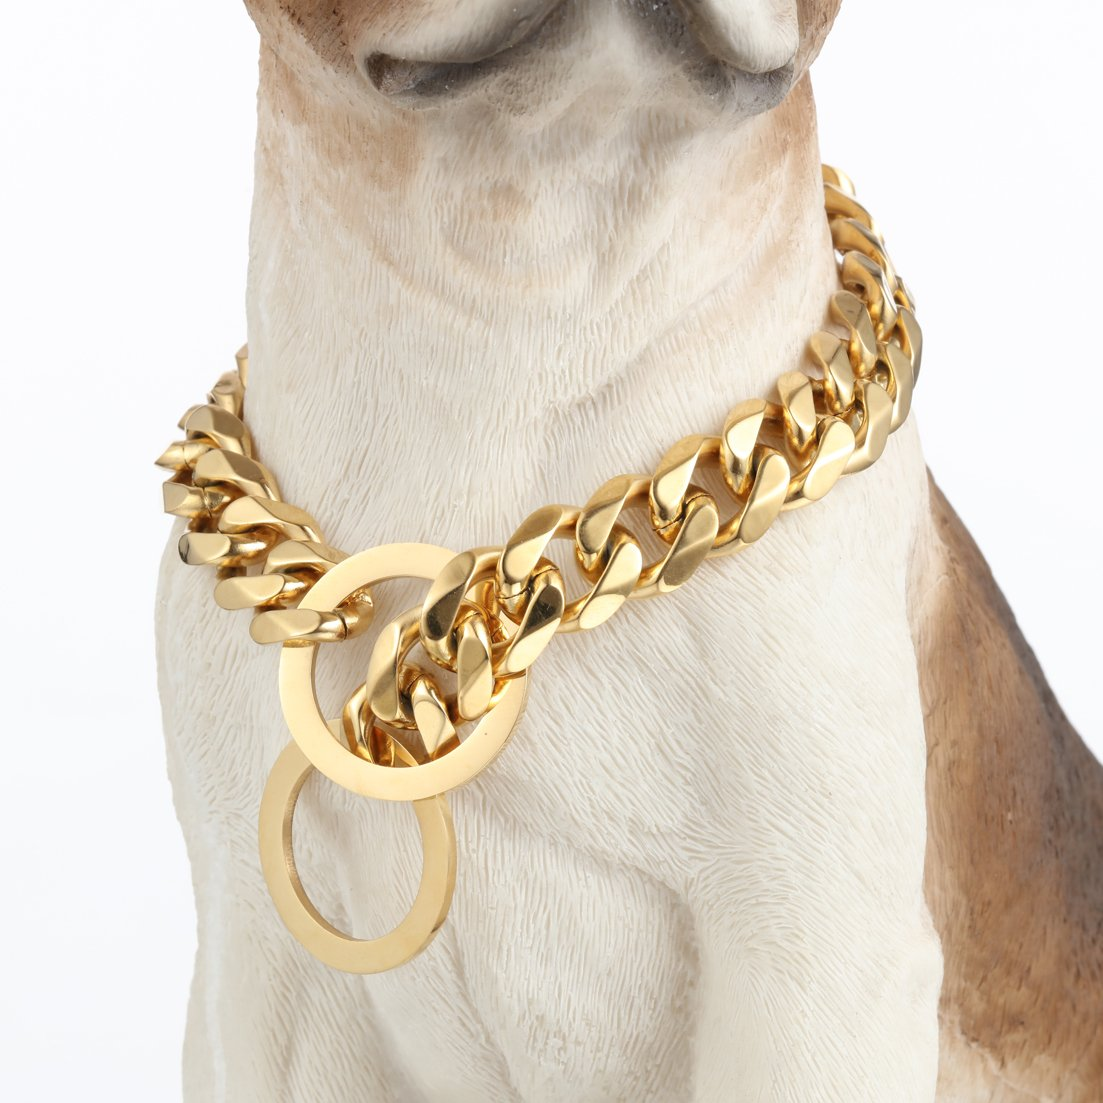 FANS JEWELRY Strong 19mm Dog Collar Stainless Steel Slip Curb Chain For Pit Bull,Mastiff,Bulldog,Big Breeds(28inches,Gold) by FANS JEWELRY